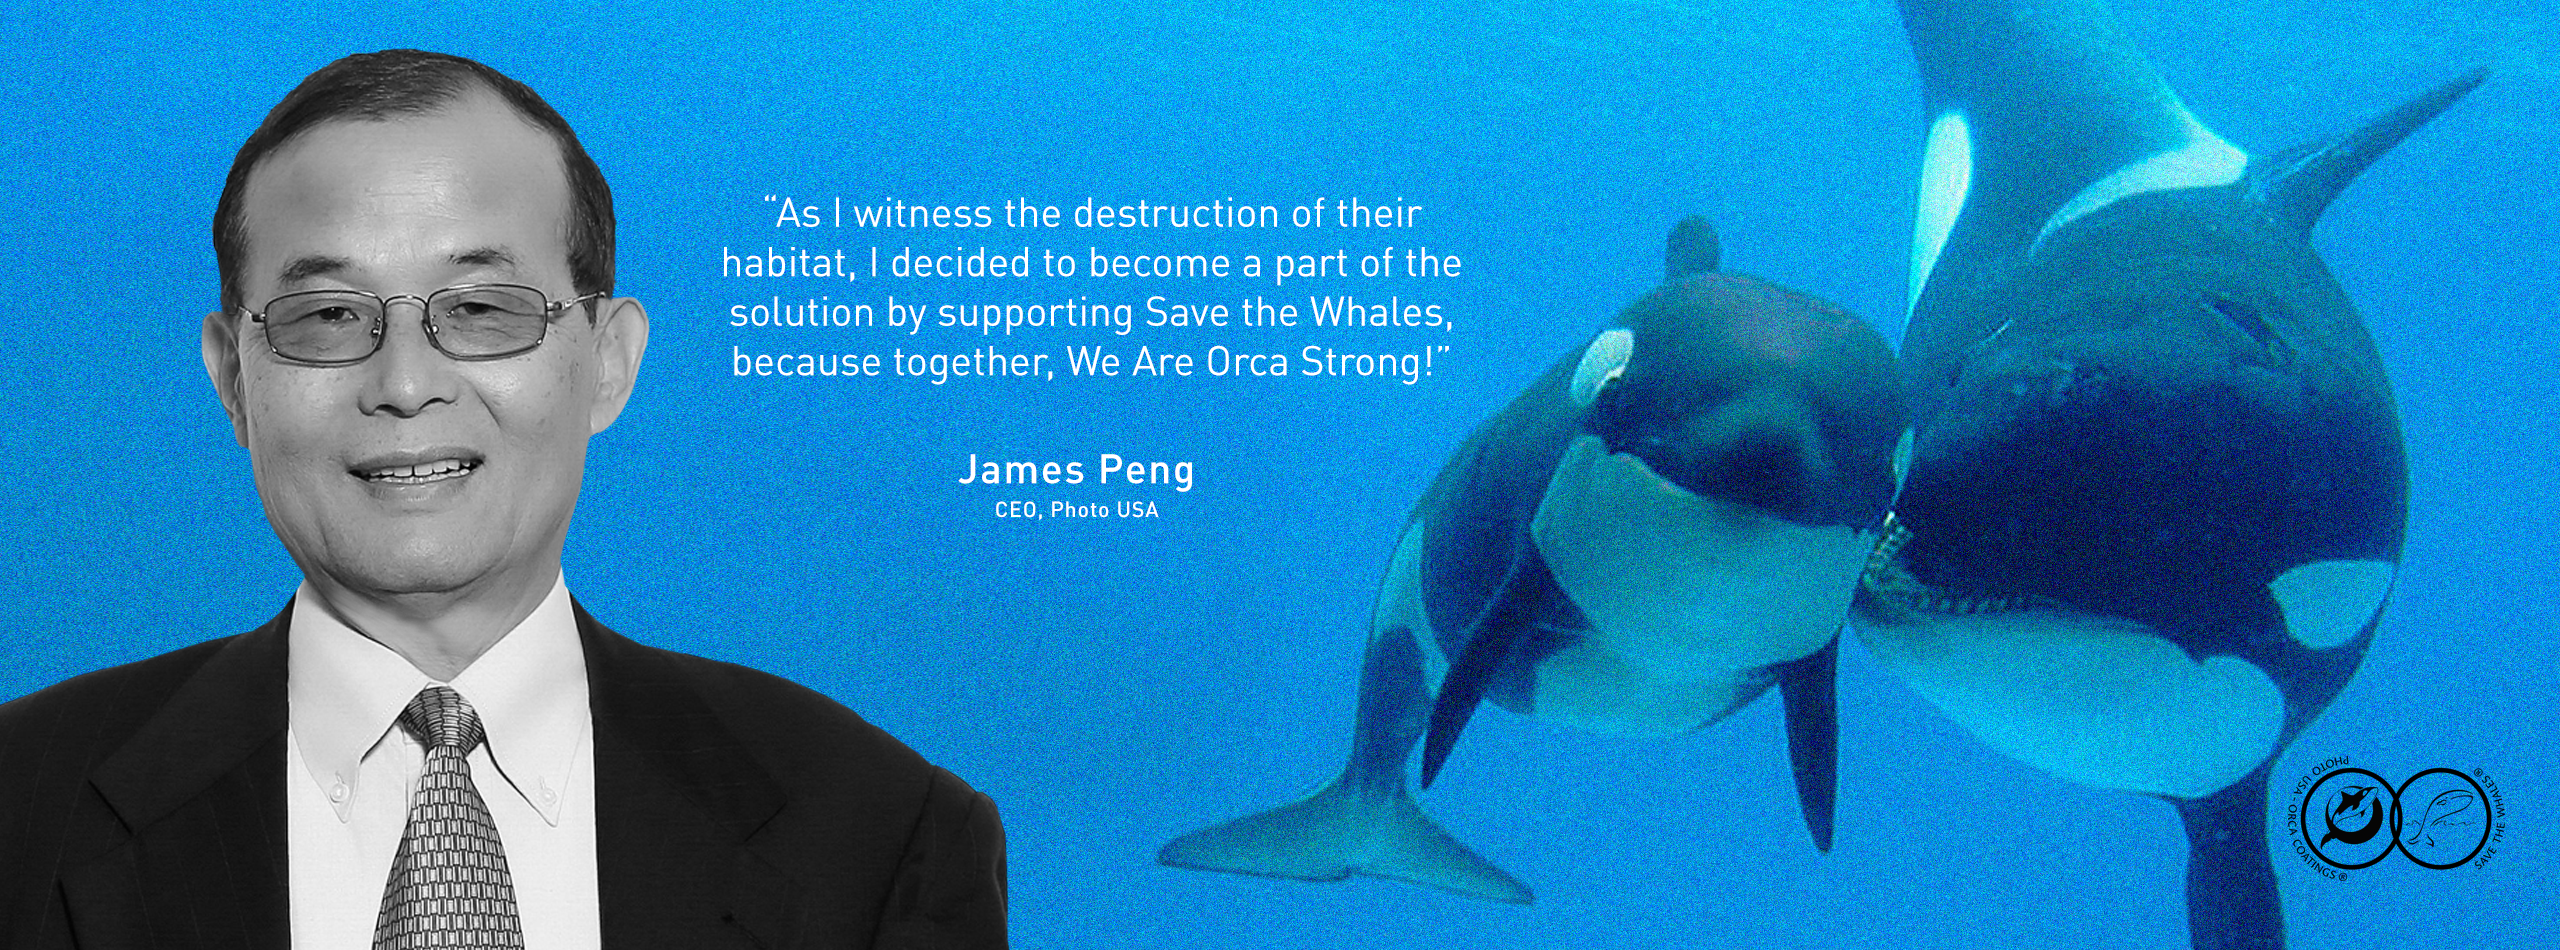 James Peng, CEO of Photo USA Corp is Dedicated to Helping Preserve the Ocean's Inhabitants with Donations